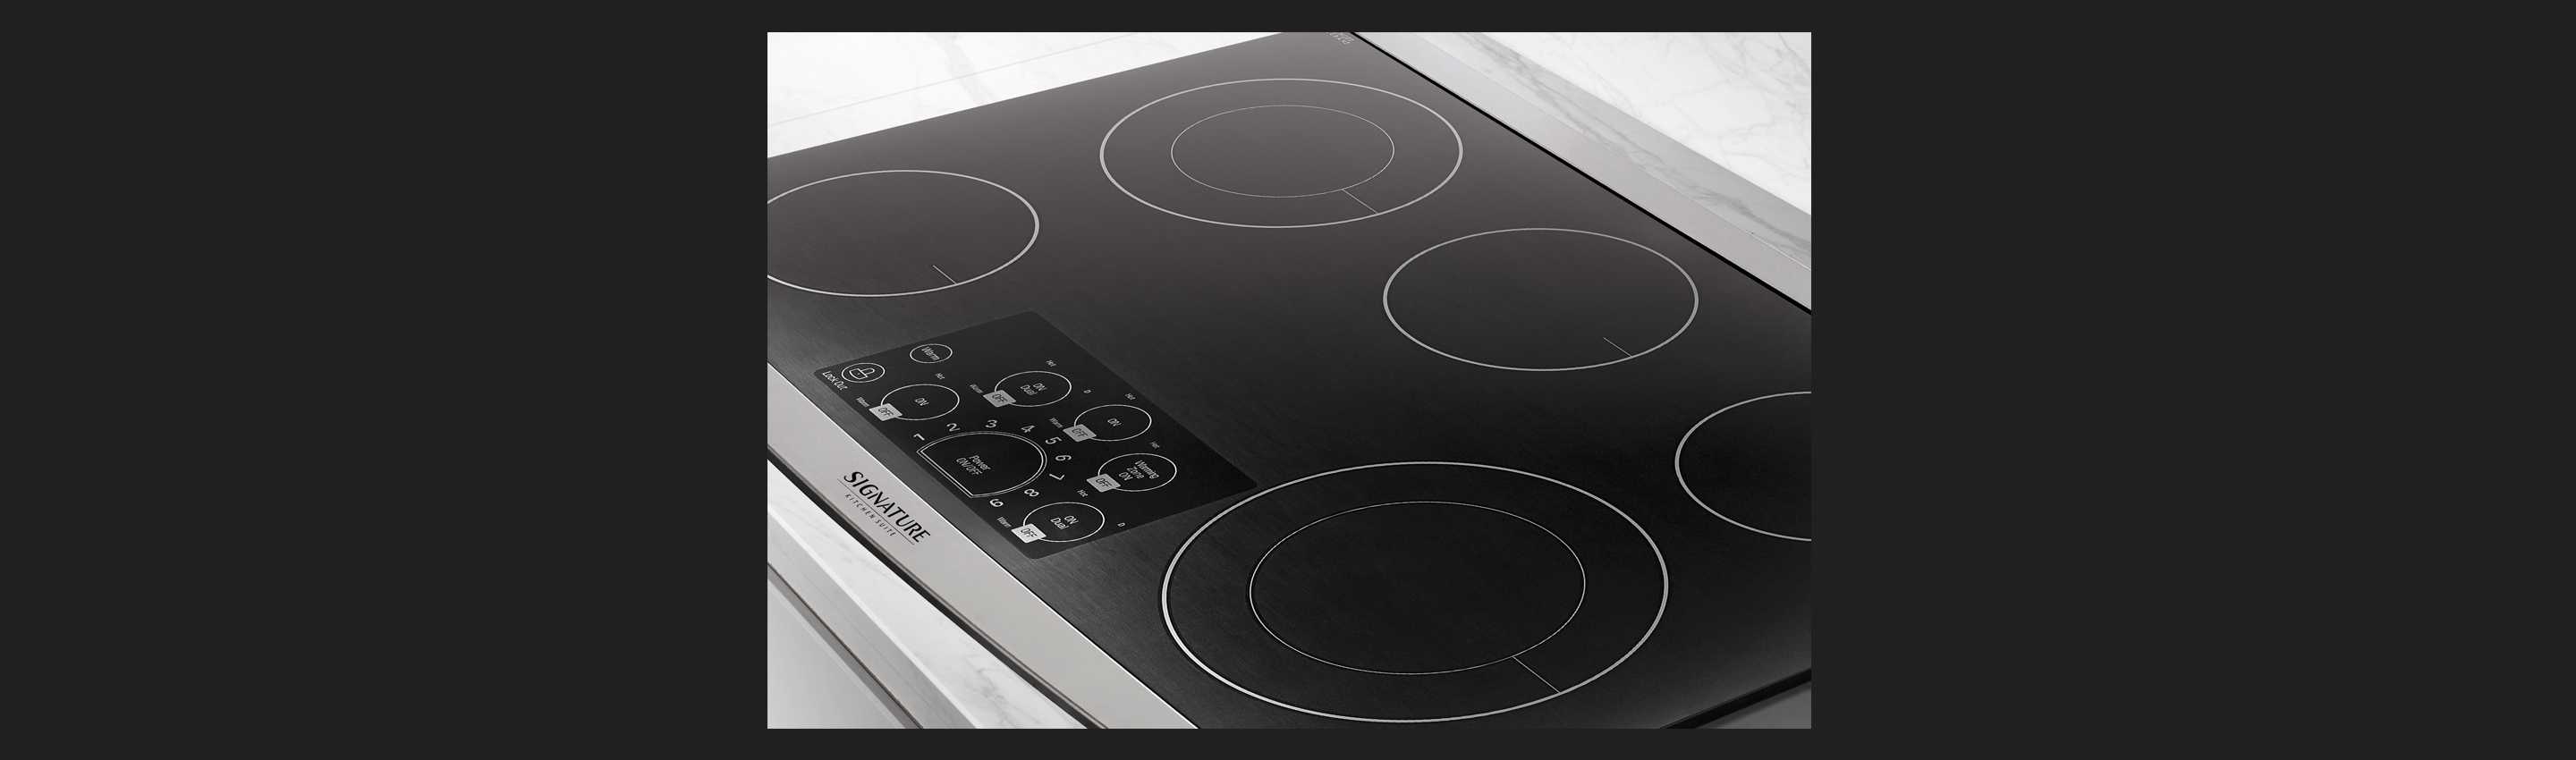 30-inch Electric Cooktop | Glass Ceramic Cooktop